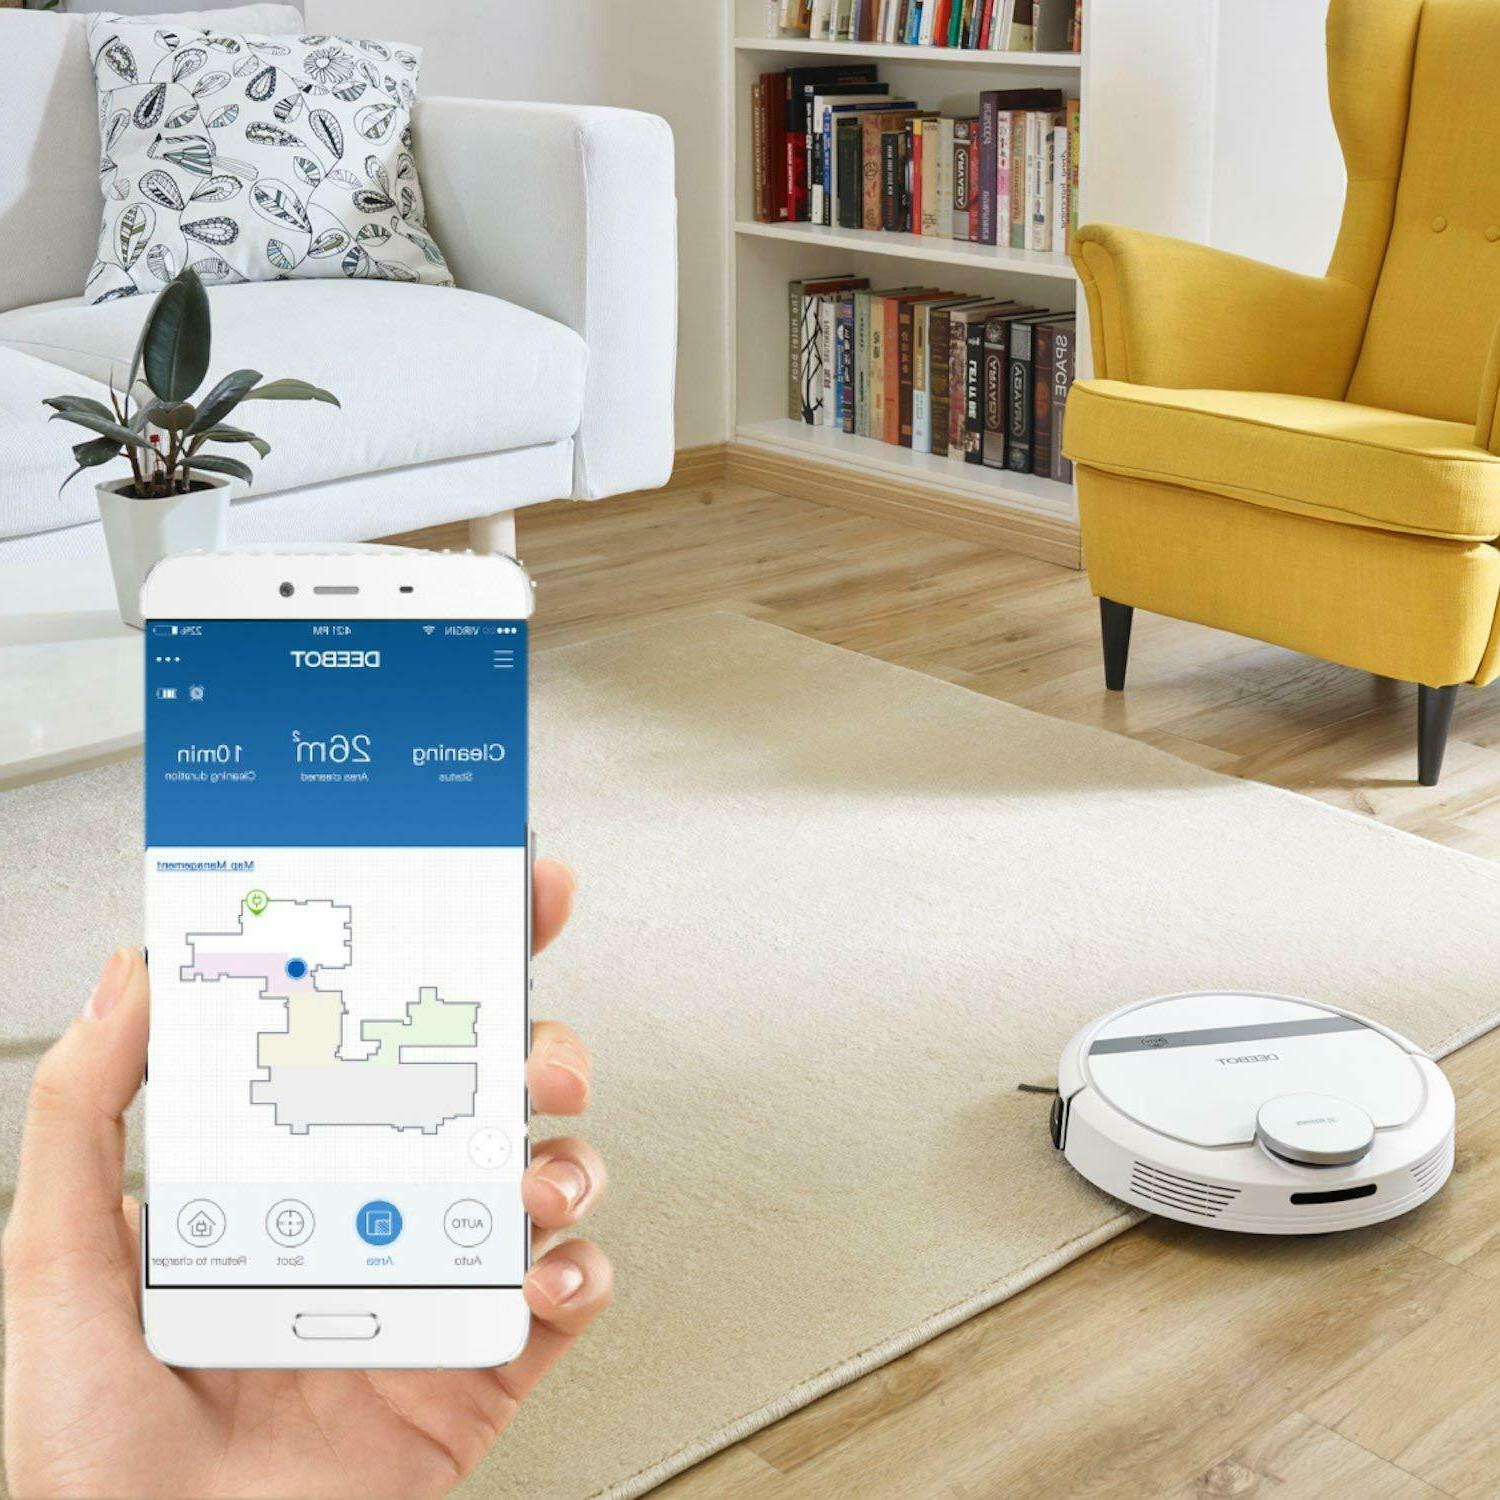 ECOVACS DEEBOT Robotic Vacuum with Mapping Technology Blemished Box